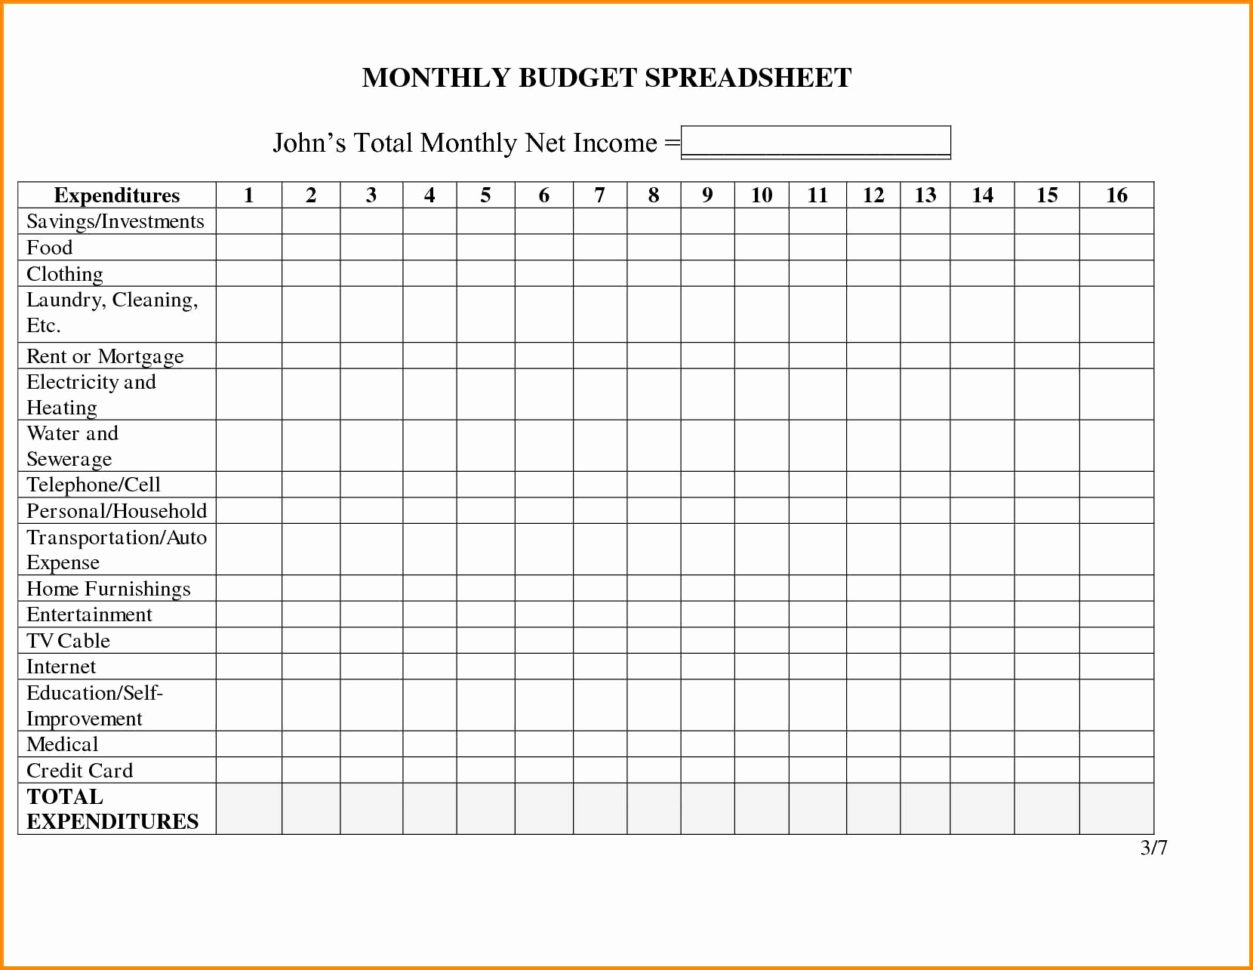 House Finances Spreadsheet Within Monthly Household Expenses Spreadsheet Unique Monthly Bud Excel